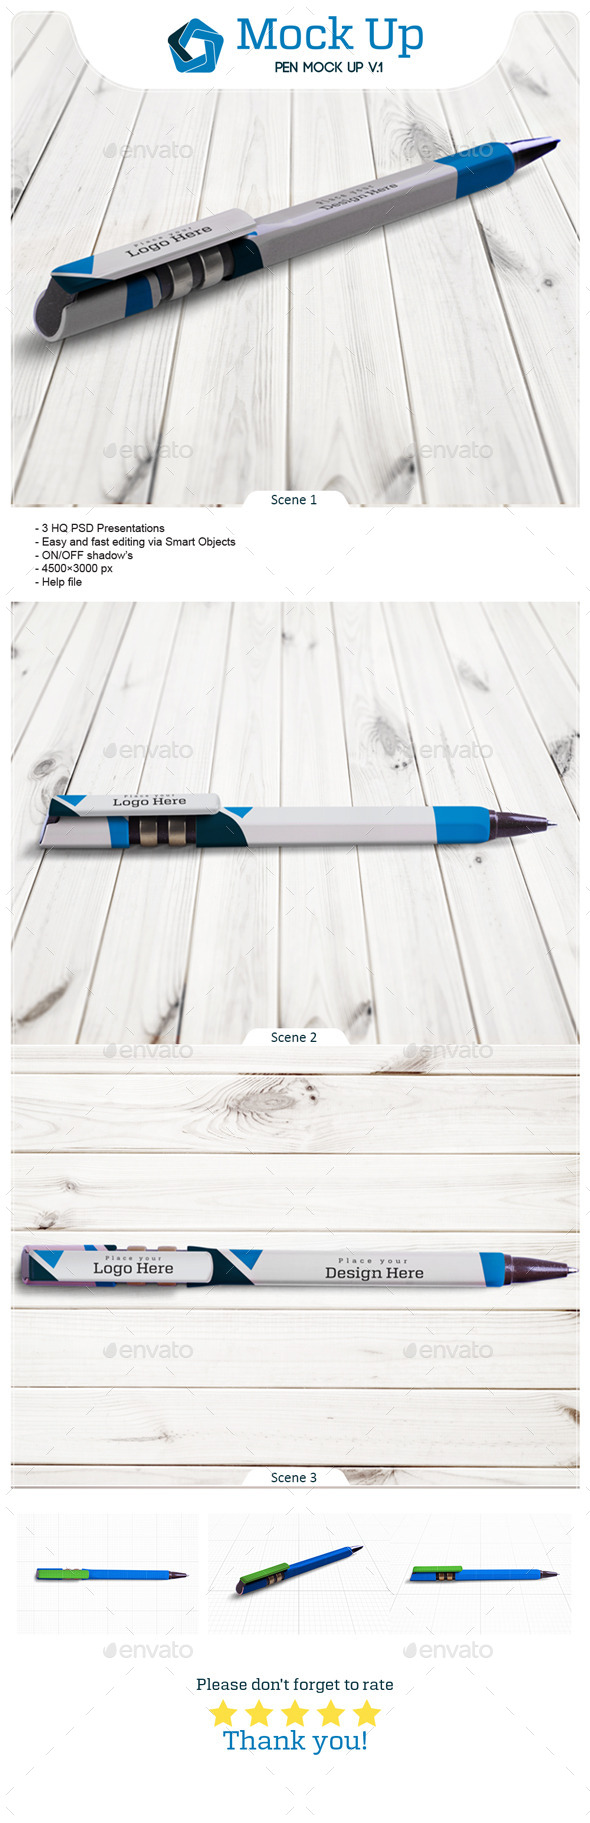 Pen Mock Up V.1